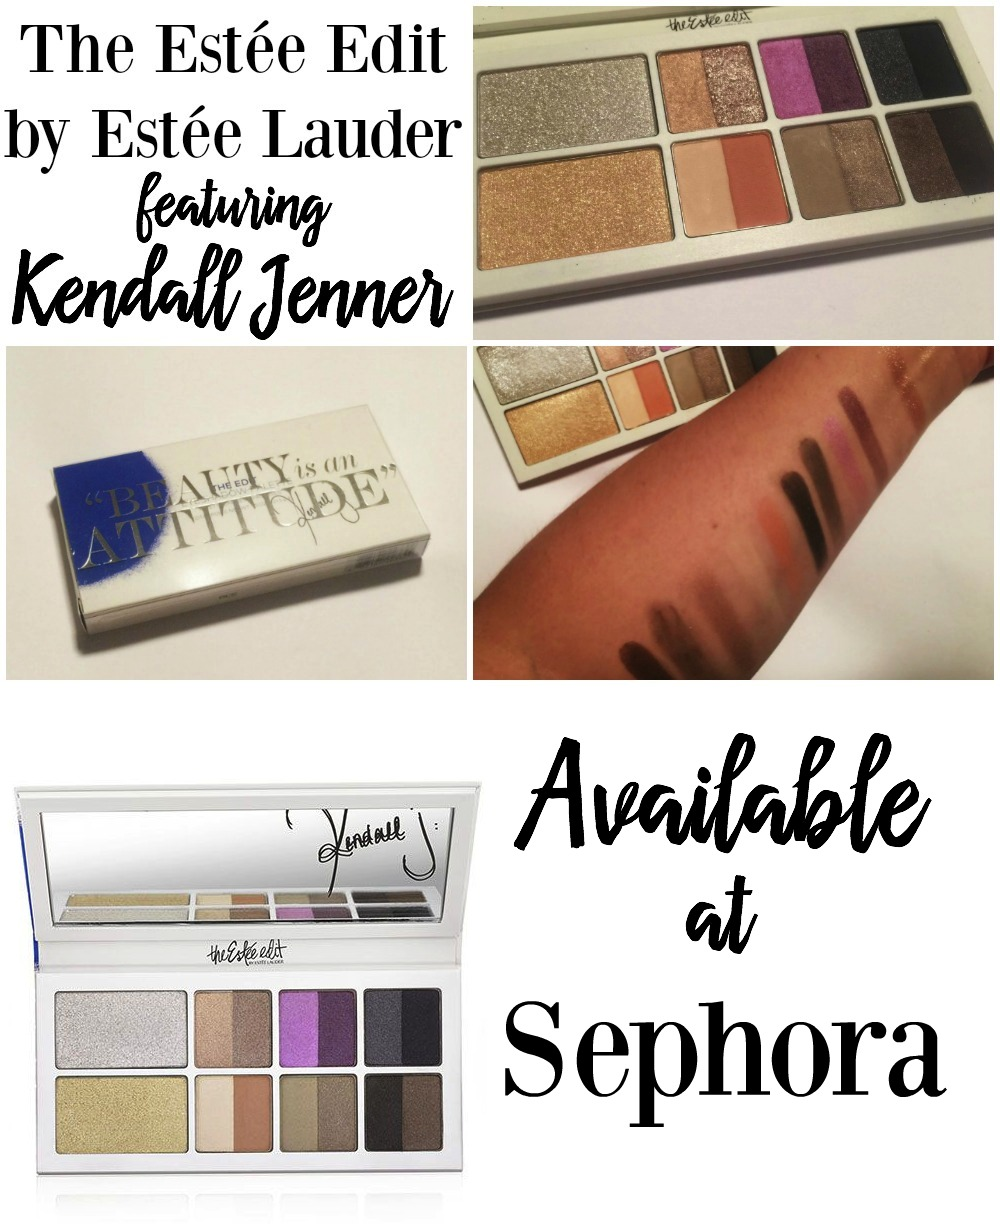 Estee Lauder Kendall Jenner Palette Review The Estee Edit